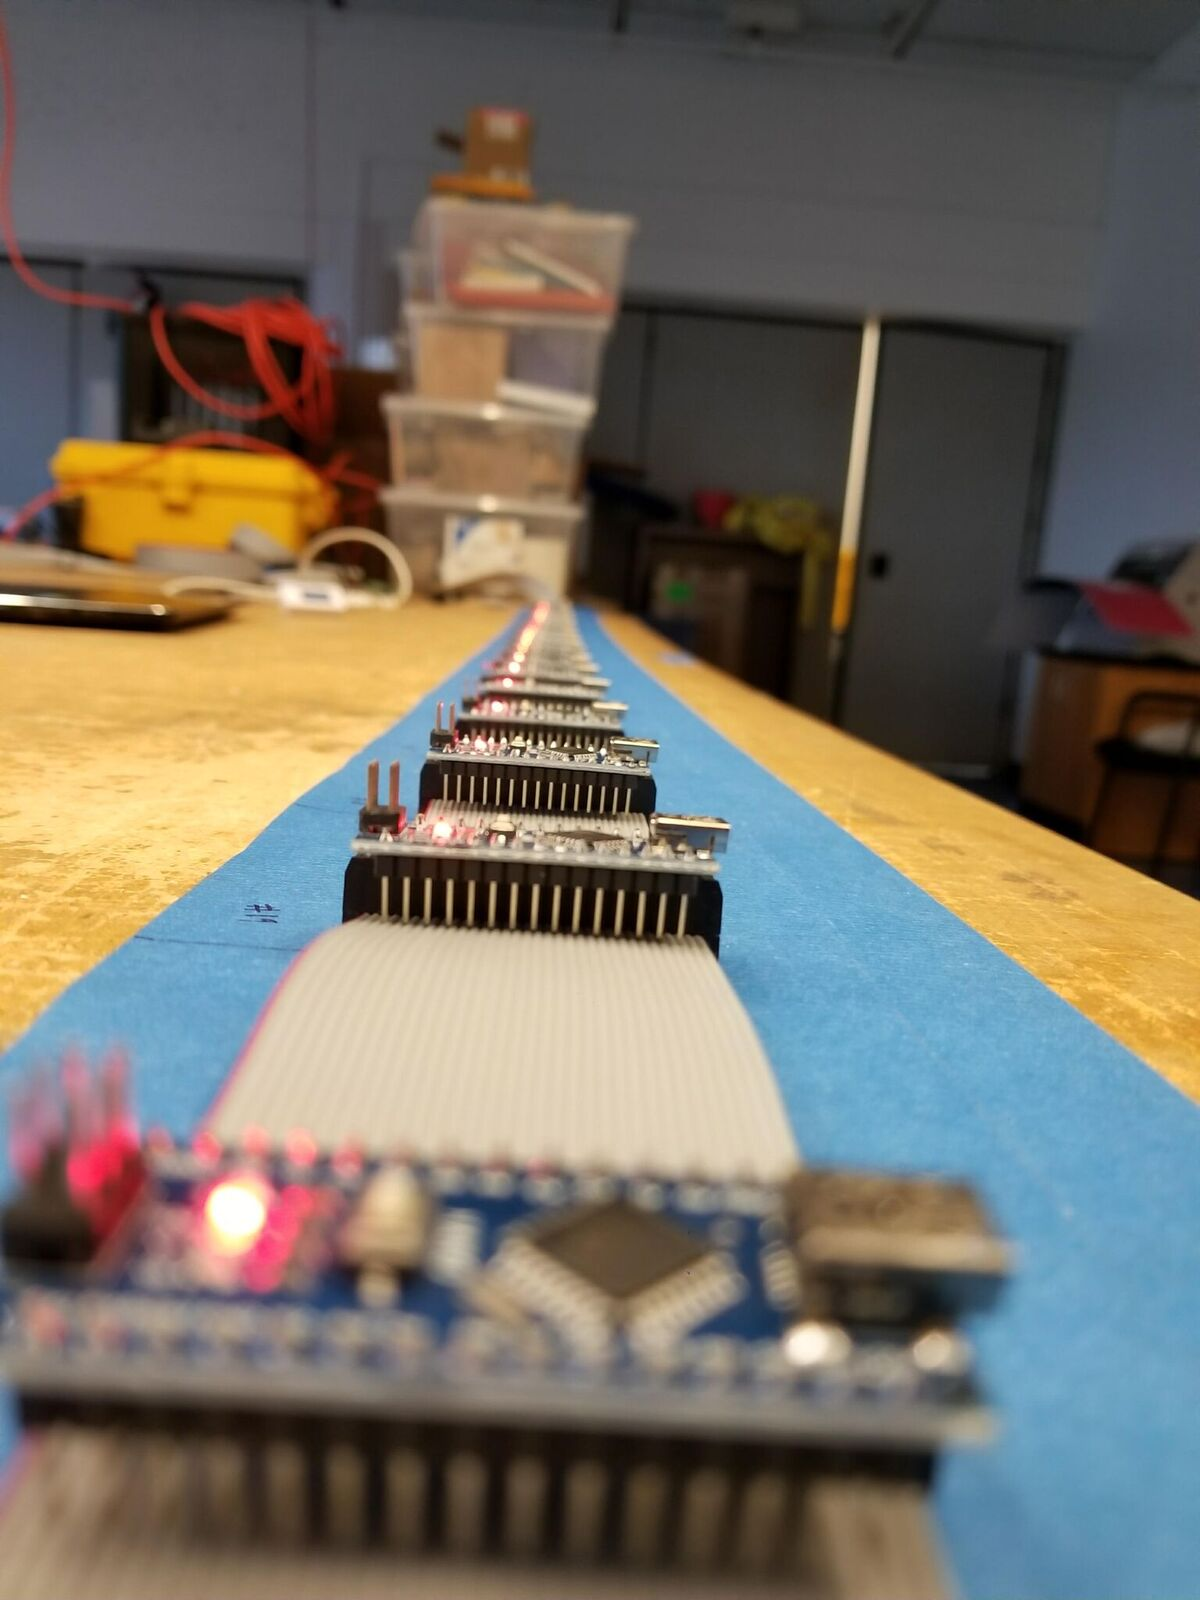 Mitch Altman Created The Ardutouch Music Synthesizer Ieeespectrum Repo Projects A Arduinopsychedeliclightorgan Images Power Stagepng Programmable Rgb Led Sequencer